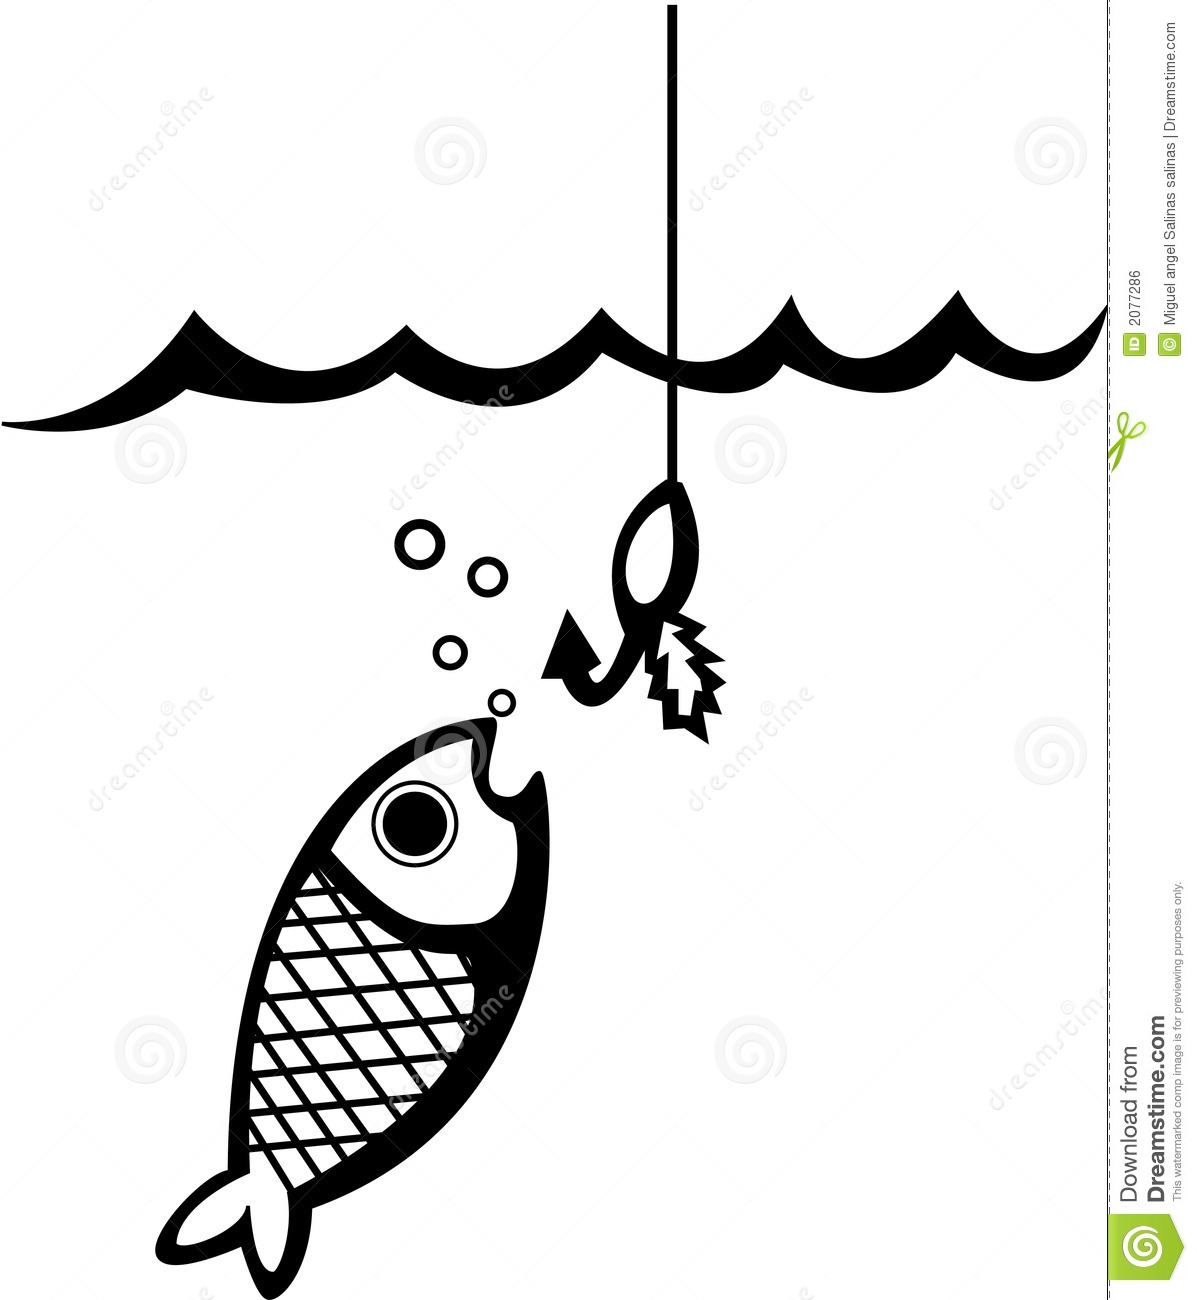 Fishing scales clipart - Clipground